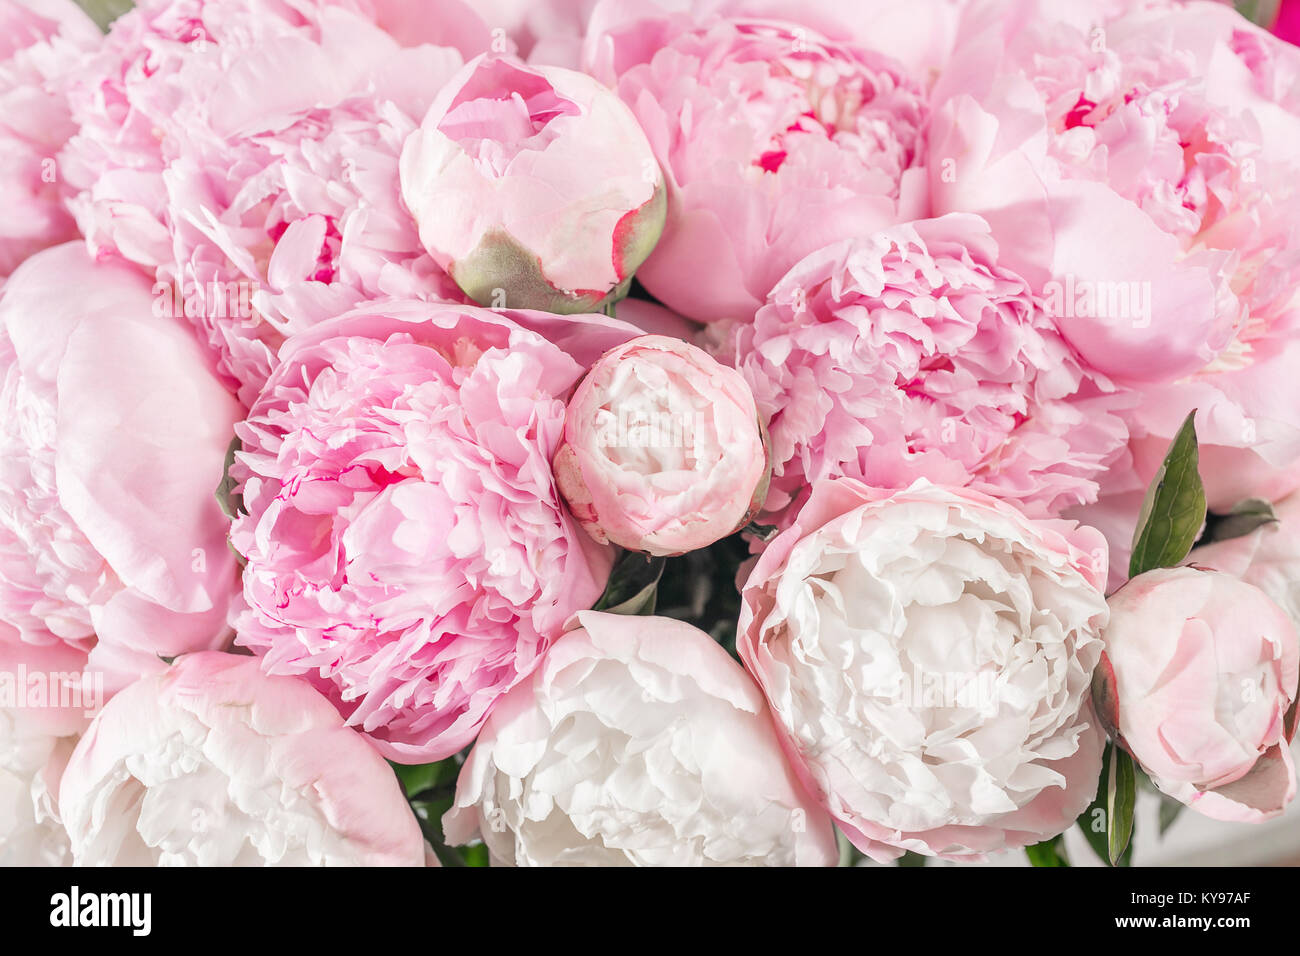 how to cut peony flowers